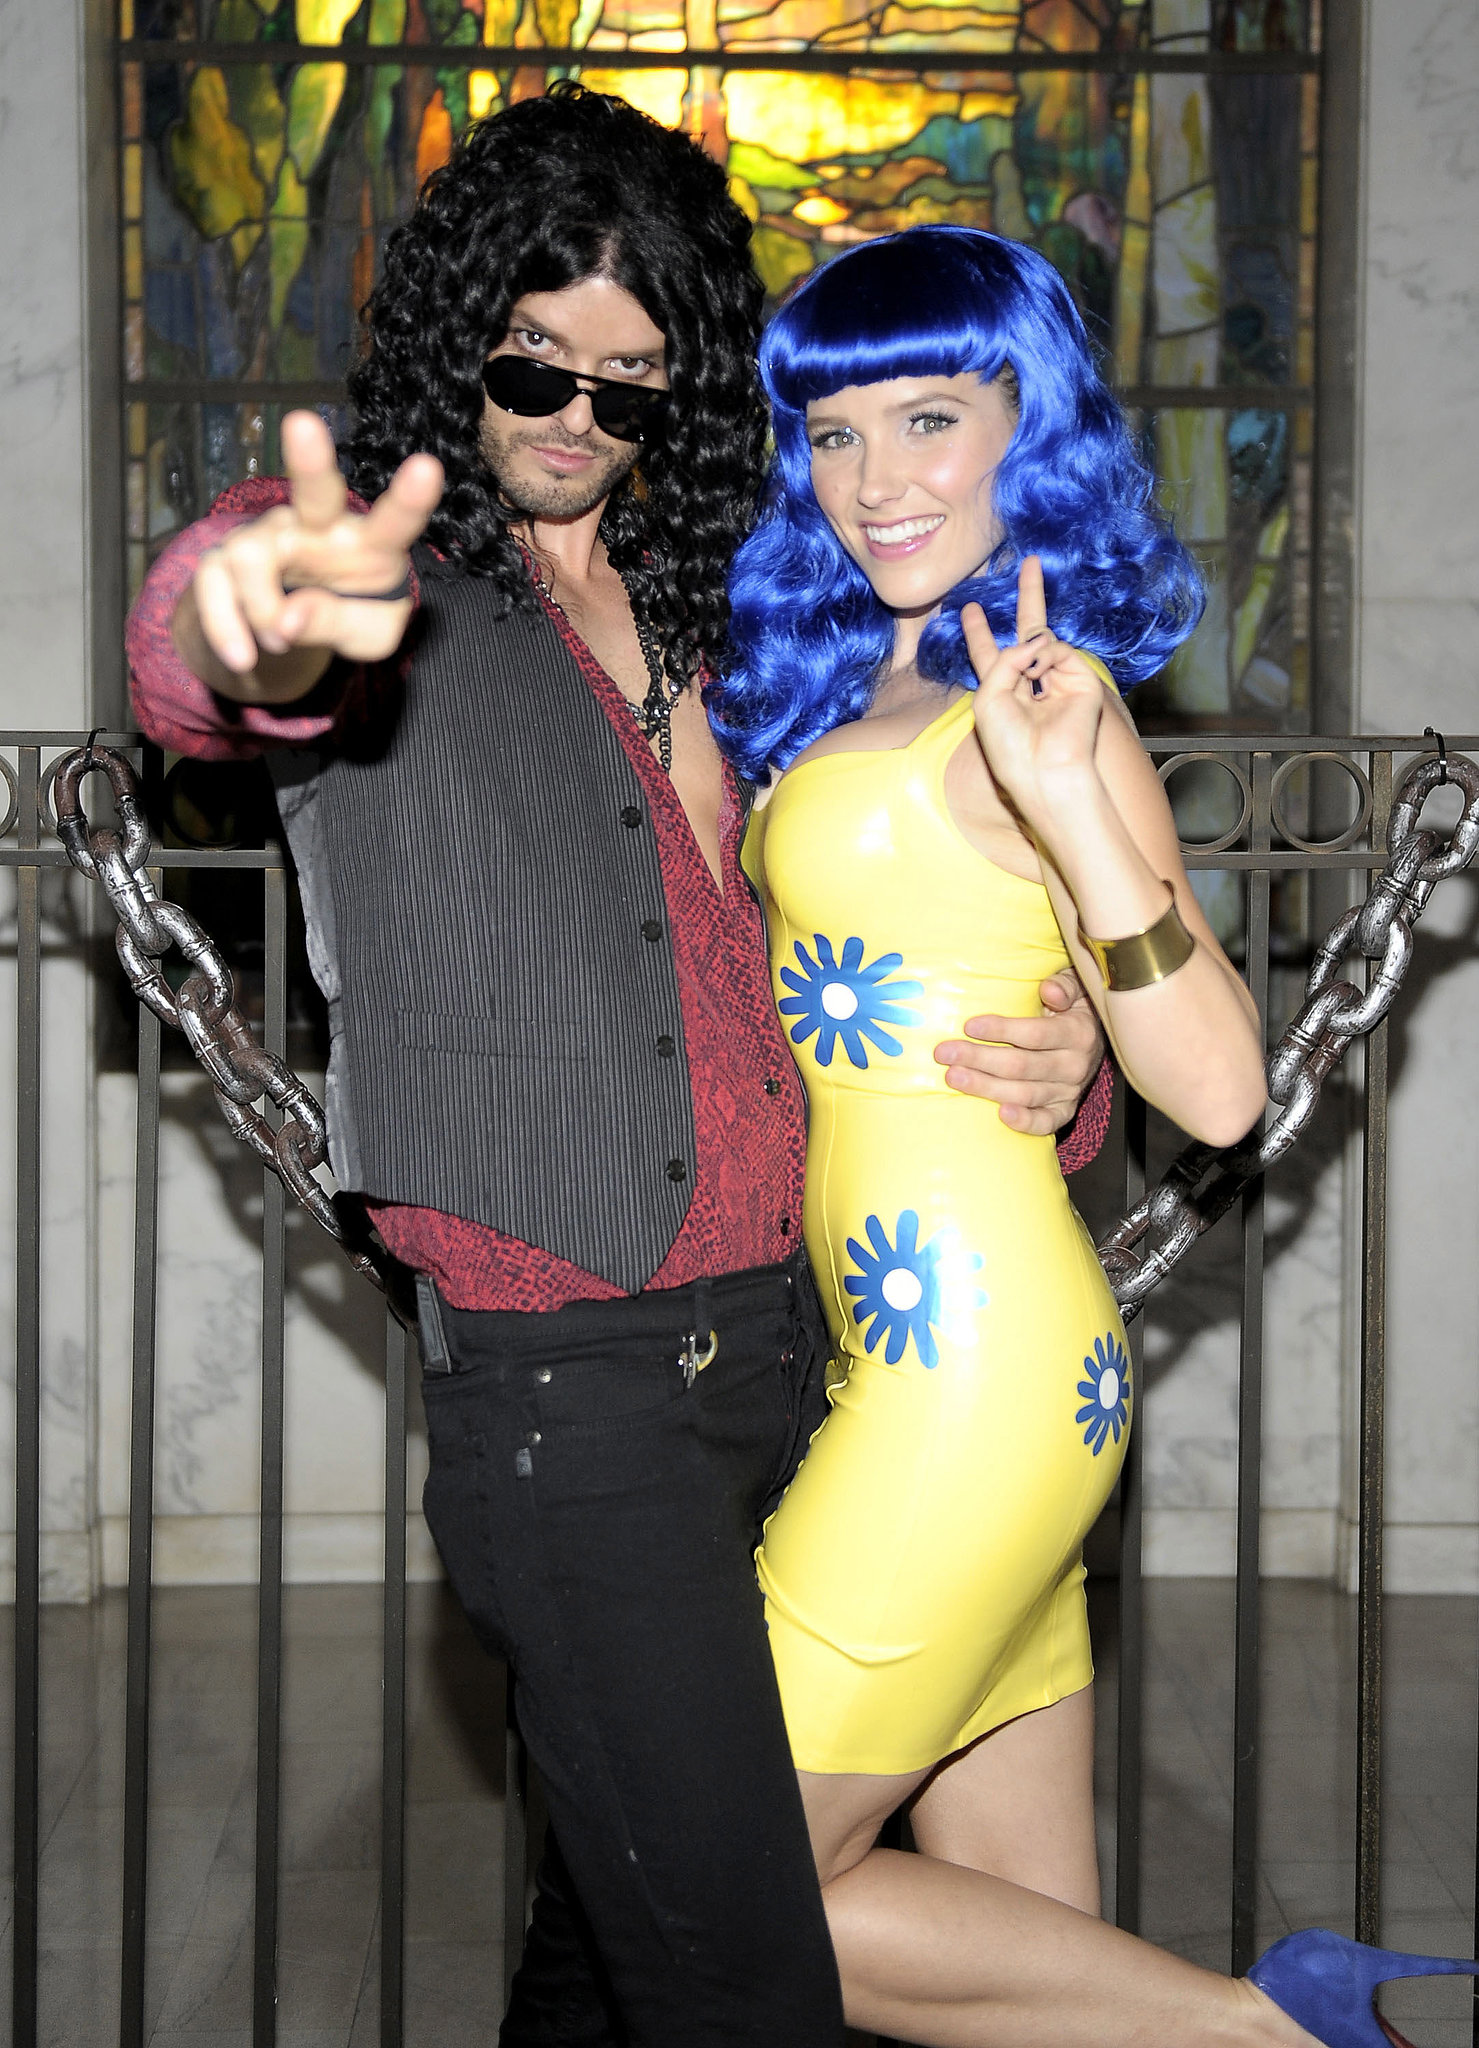 Iconic Couples For Halloween: Sophia Bush And Austin Nichols As Katy Perry And Russell